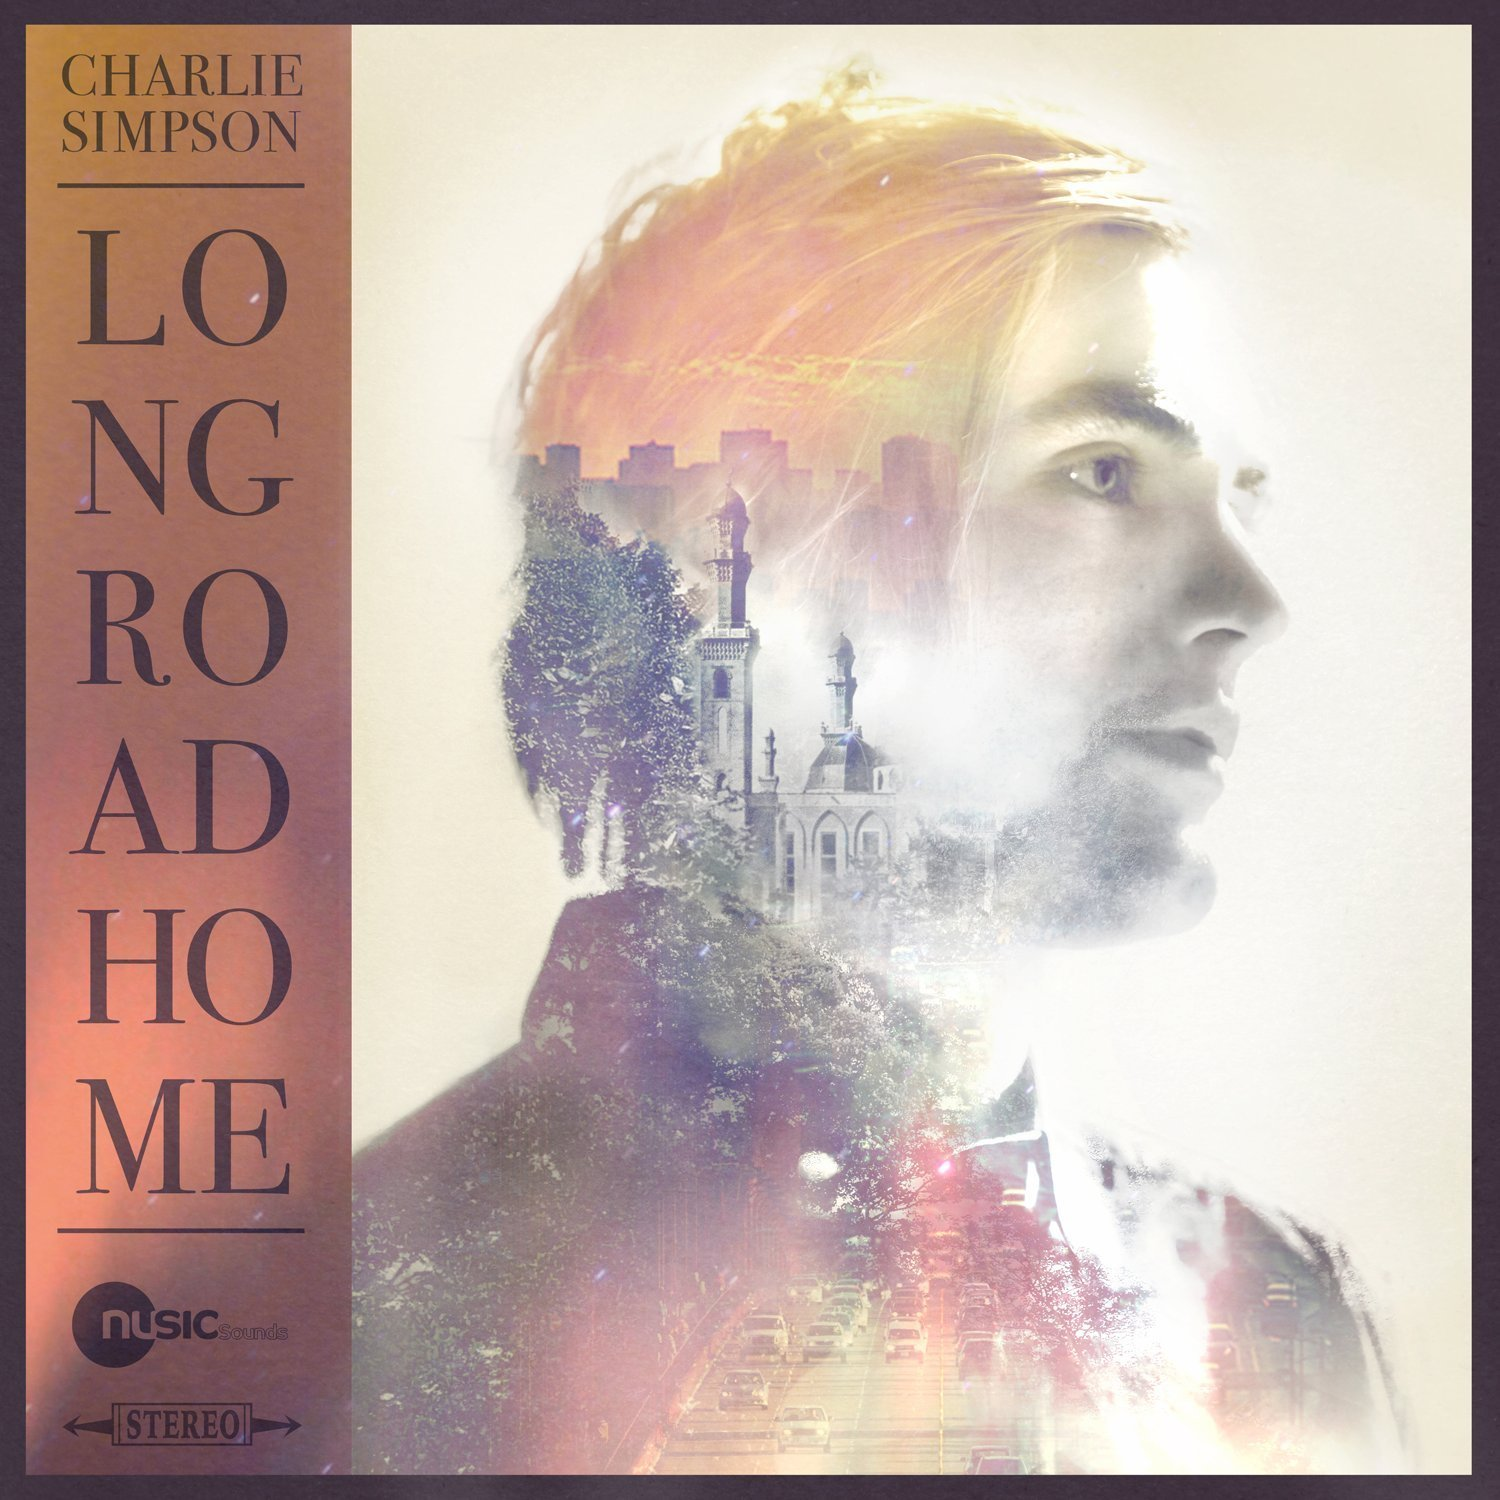 Charlie Simpson's 'Long Road Home' debuts in the UK Official Album Chart Top 10